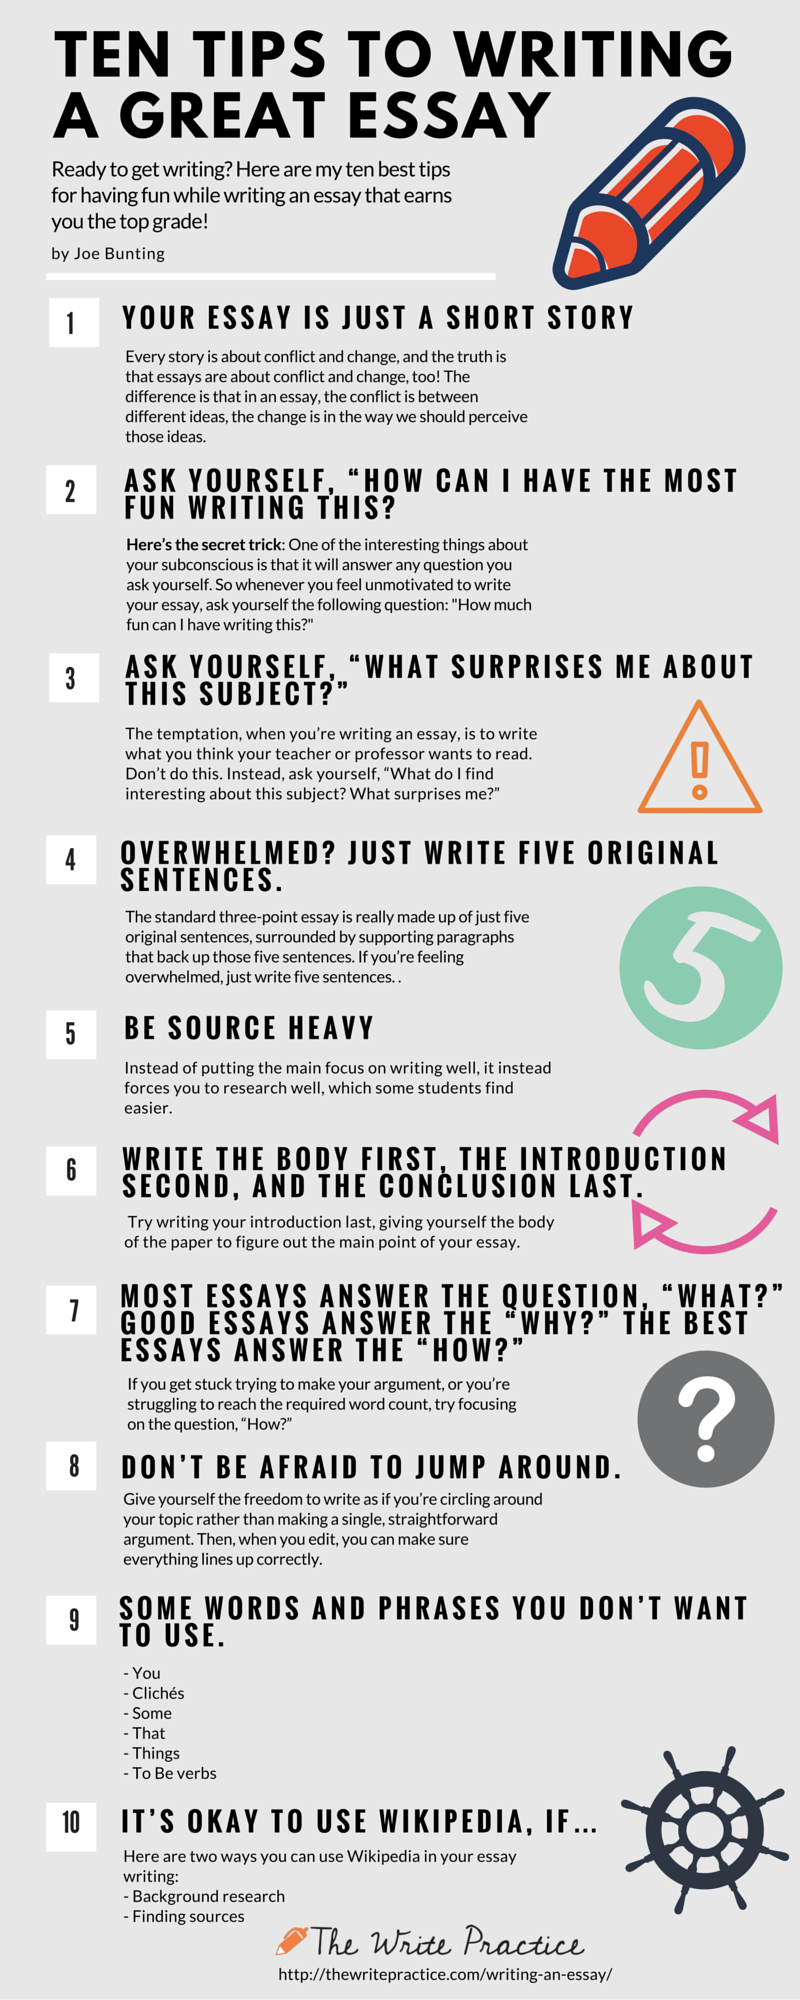 Ten steps for writing an essay